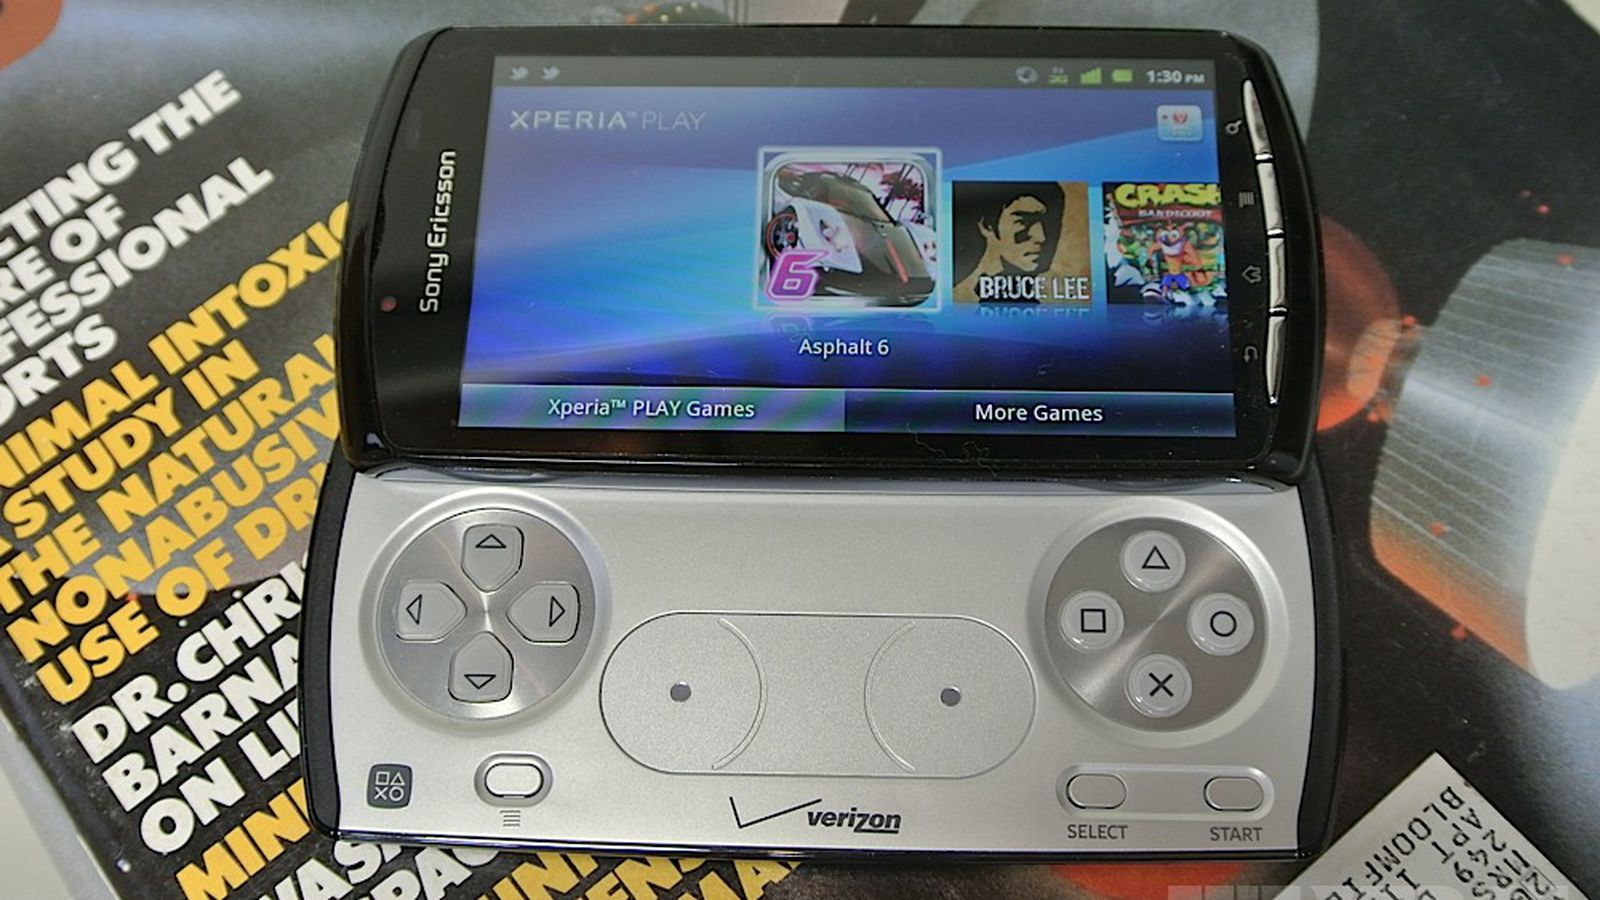 Sony ericsson xperia play on sale now: are you buying? Slashgear.